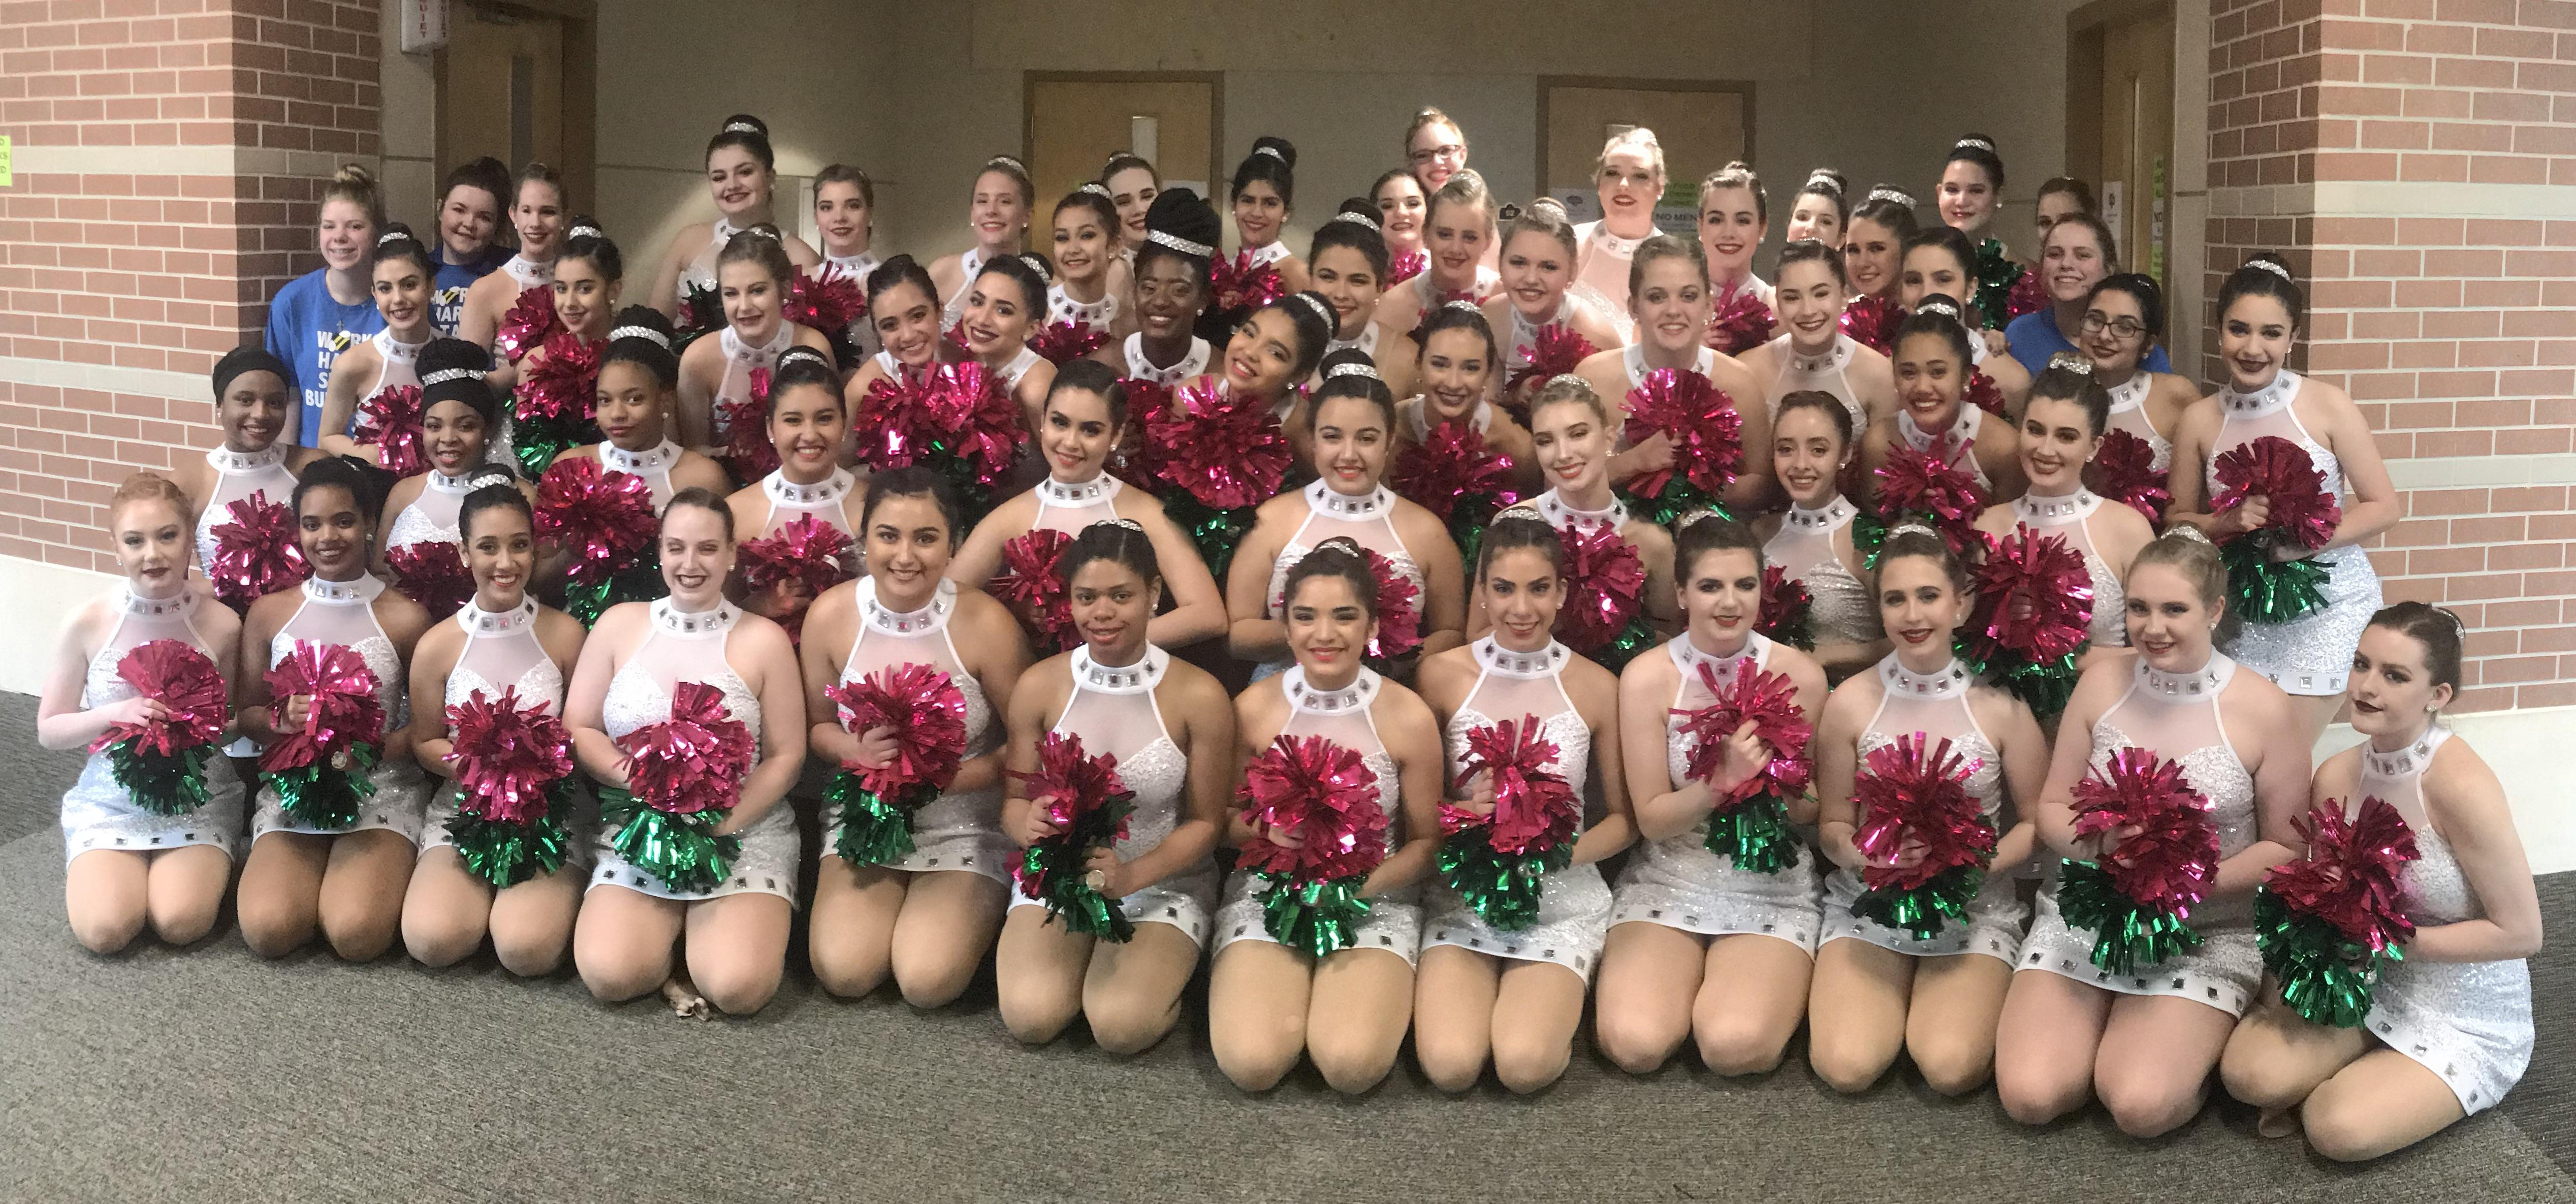 Honeycombs win awards at American Dance and Drill Team International/Nationals Competition